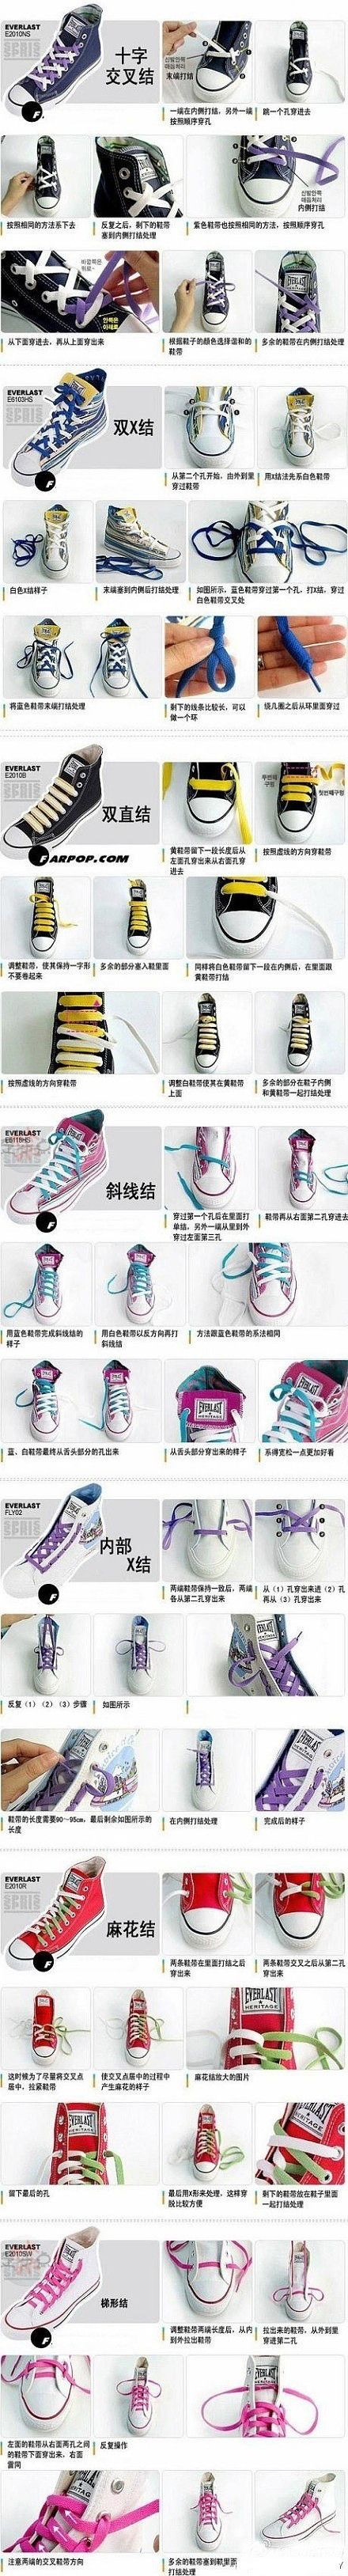 Instructions for fun shoelace ideas